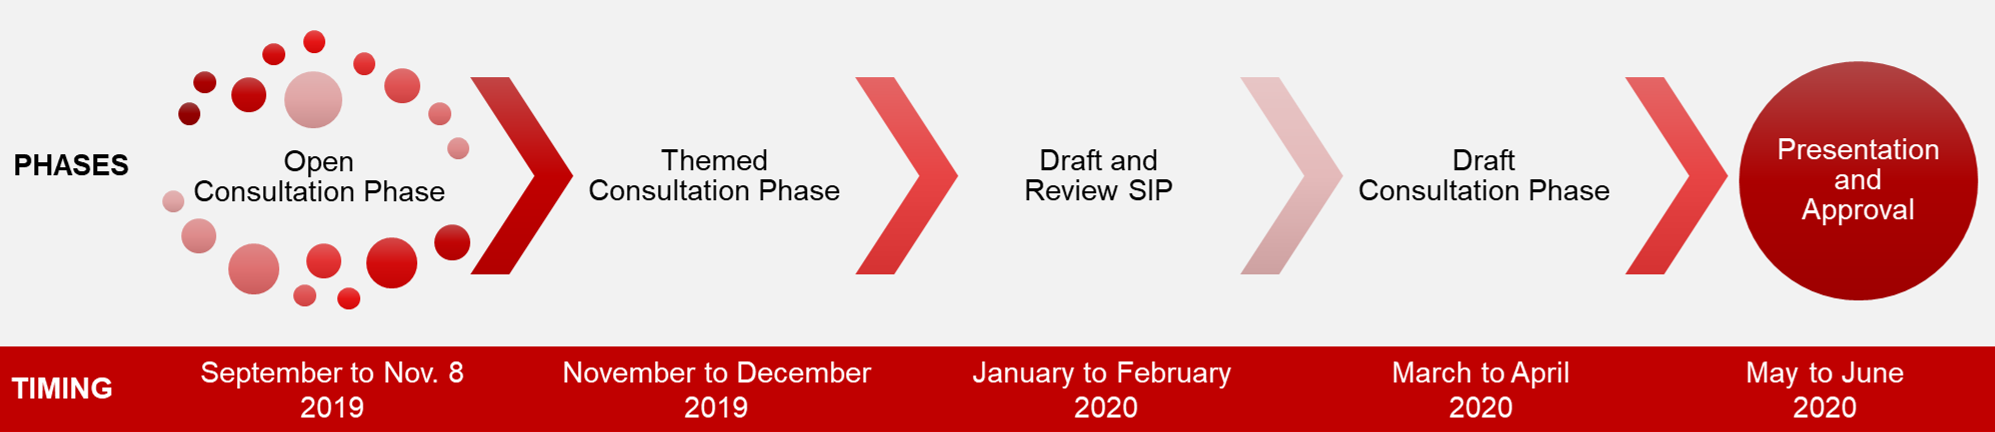 Graphic showing SIP Timeline phases: Open Consultation phase is September to Nov. 8, Themed Consultation Phase is November-December, Draft and Review SIP is January to February 2020, Draft Consultation Phase is March to April, and the Presentation and Approval of the SIP is May to June 2020.